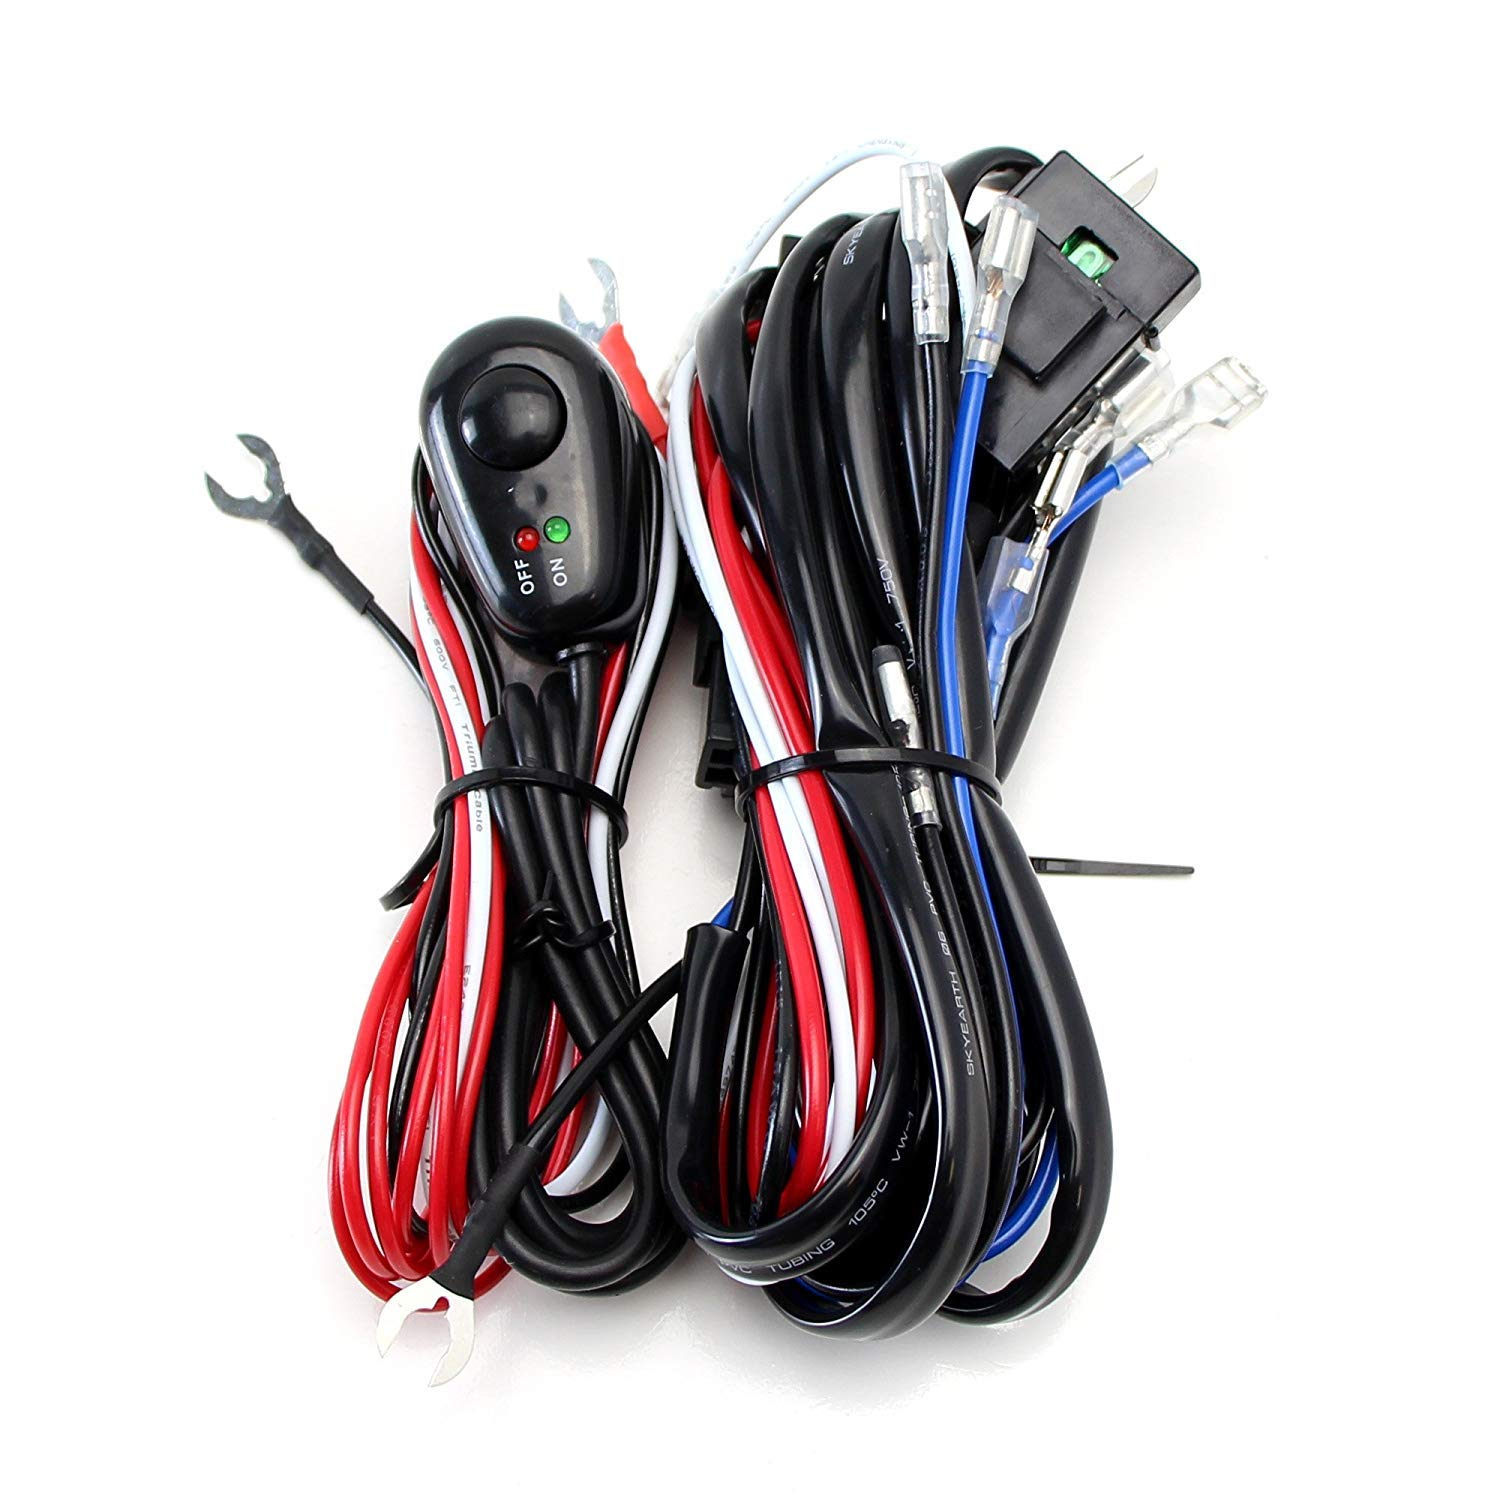 Amazon.com: iJDMTOY 4-Output Universal Fit Relay Harness Wire Kit with LED  Light ON/OFF Switch For Fog Lights, Driving Lights, HID Conversion Kit or  LED Pod ...